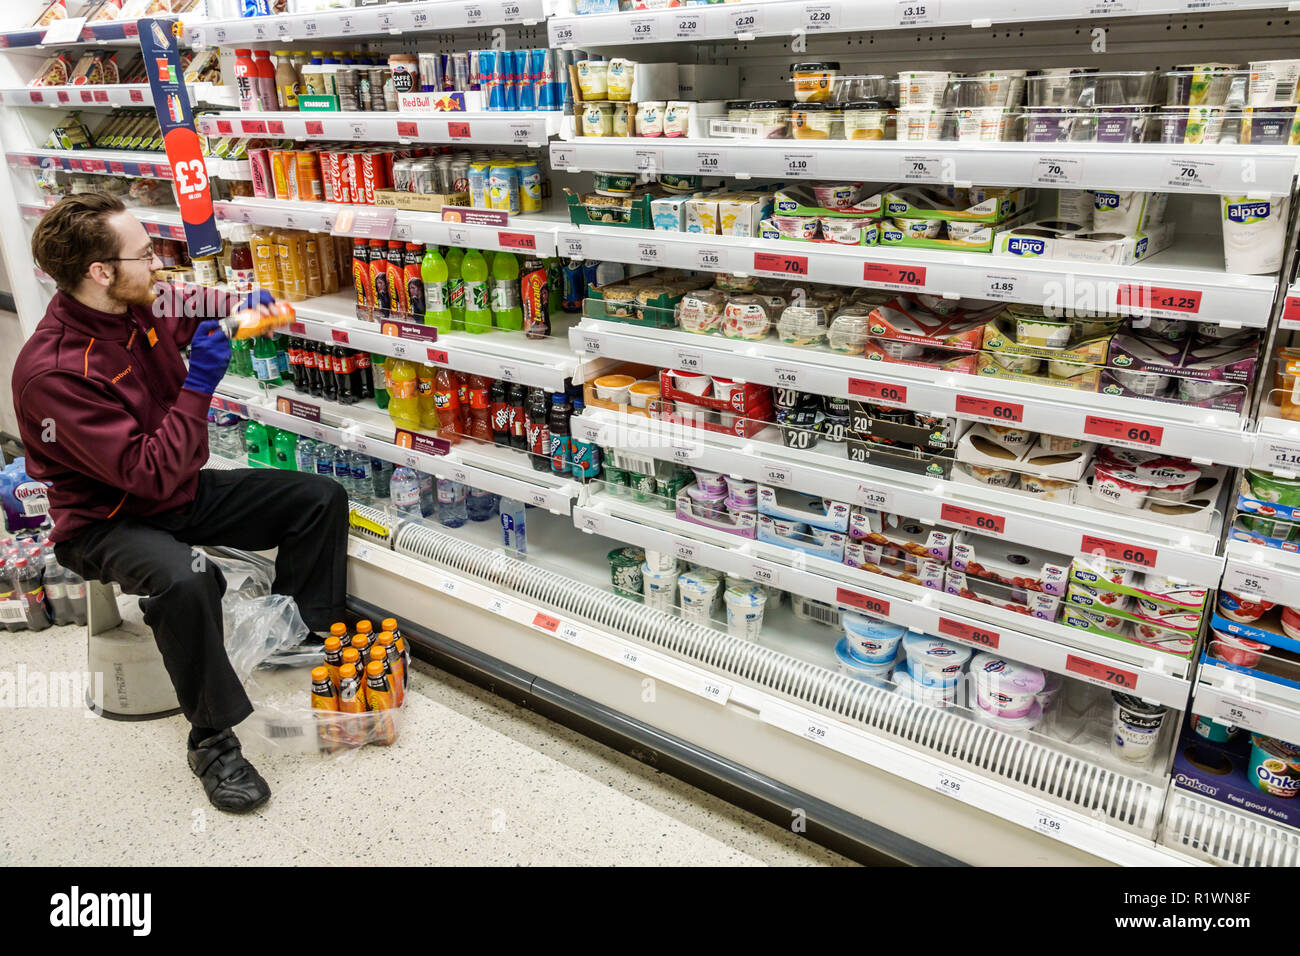 London England United Kingdom Great Britain Lambeth South Bank Sainsbury's grocery supermarket convenience store inside interior refrigerated case she - Stock Image